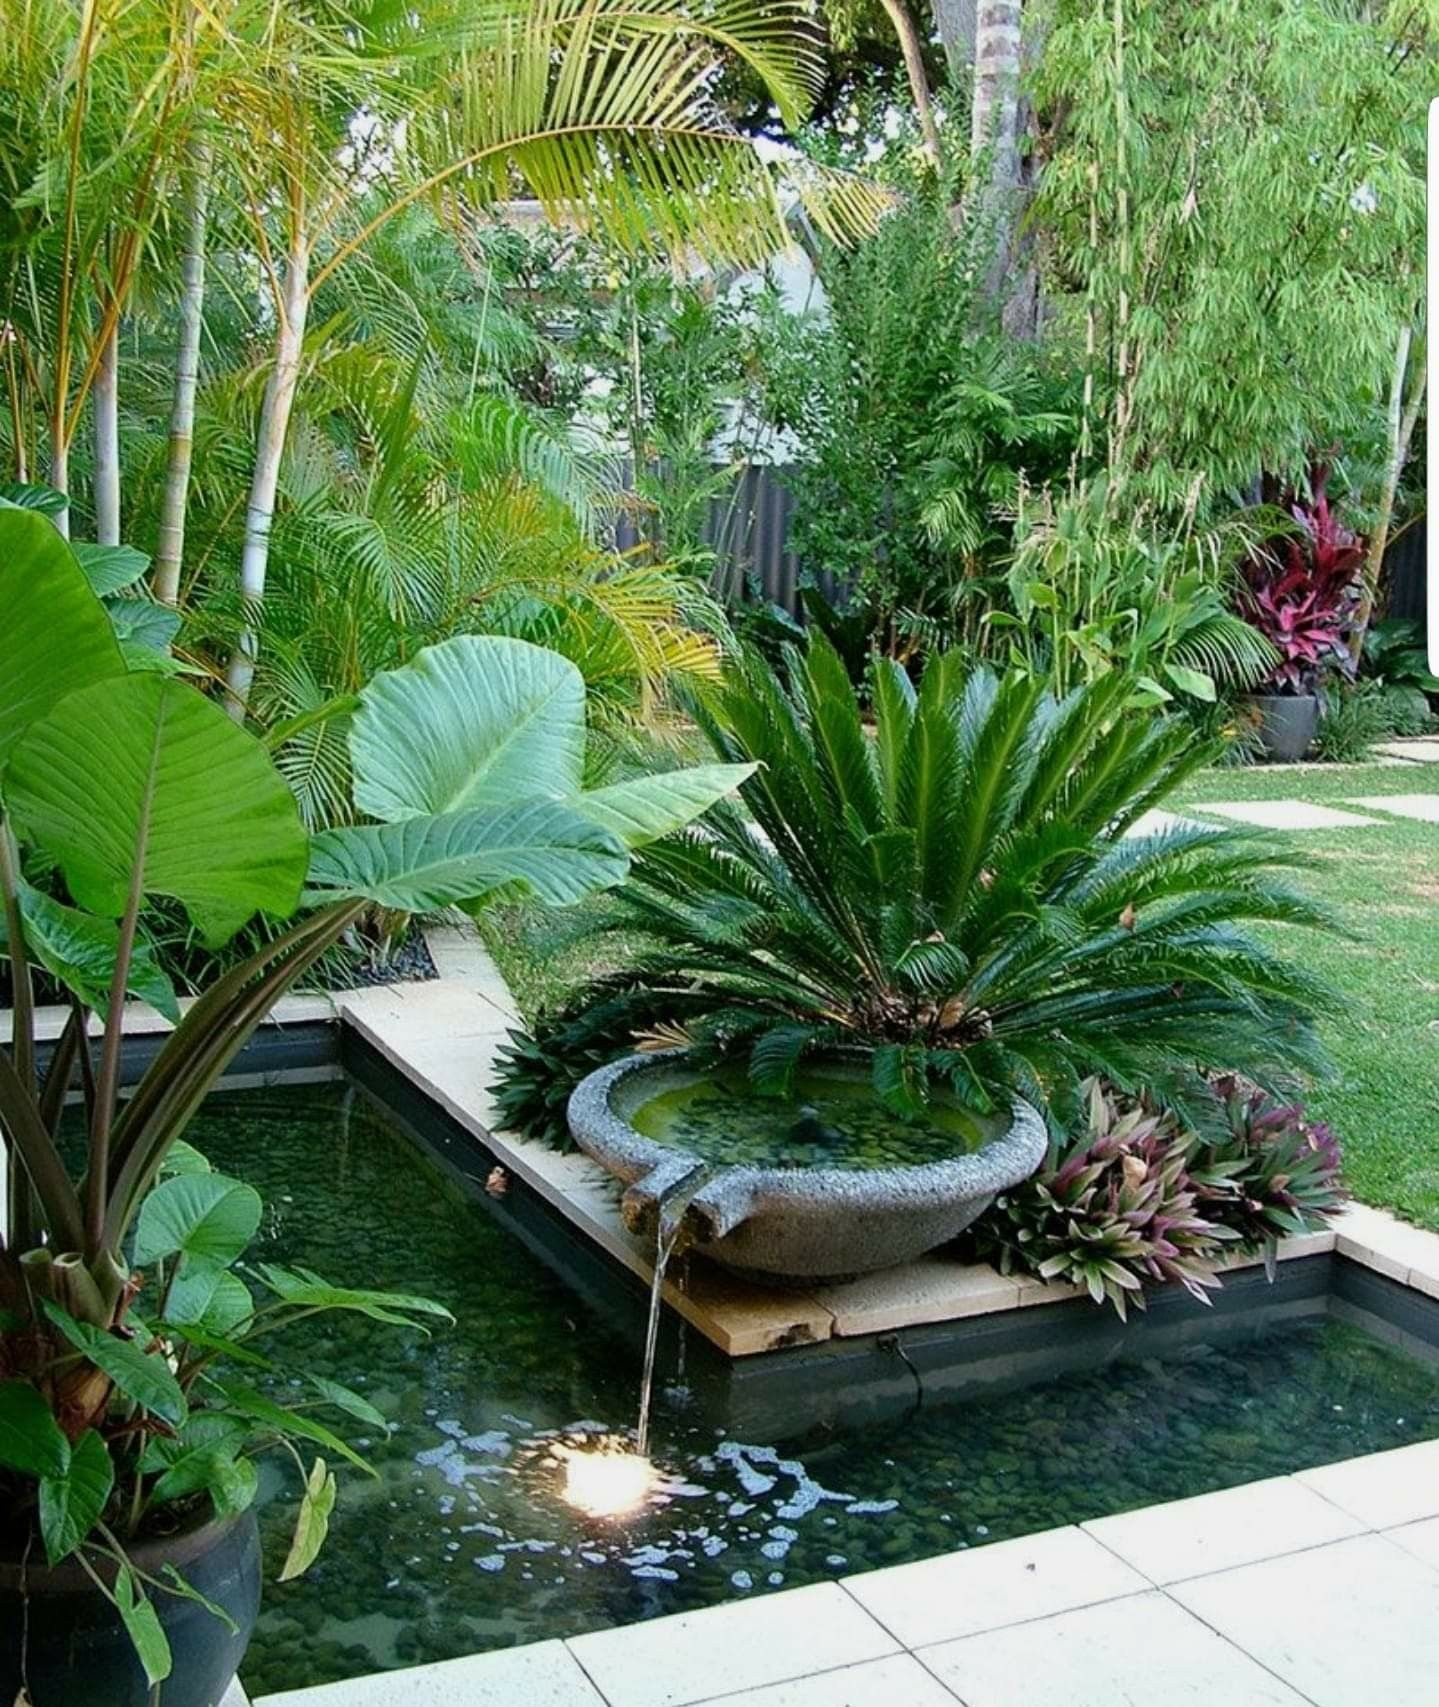 Tropical Home Garden Design Ideas: Garden Design Ideas And Concepts